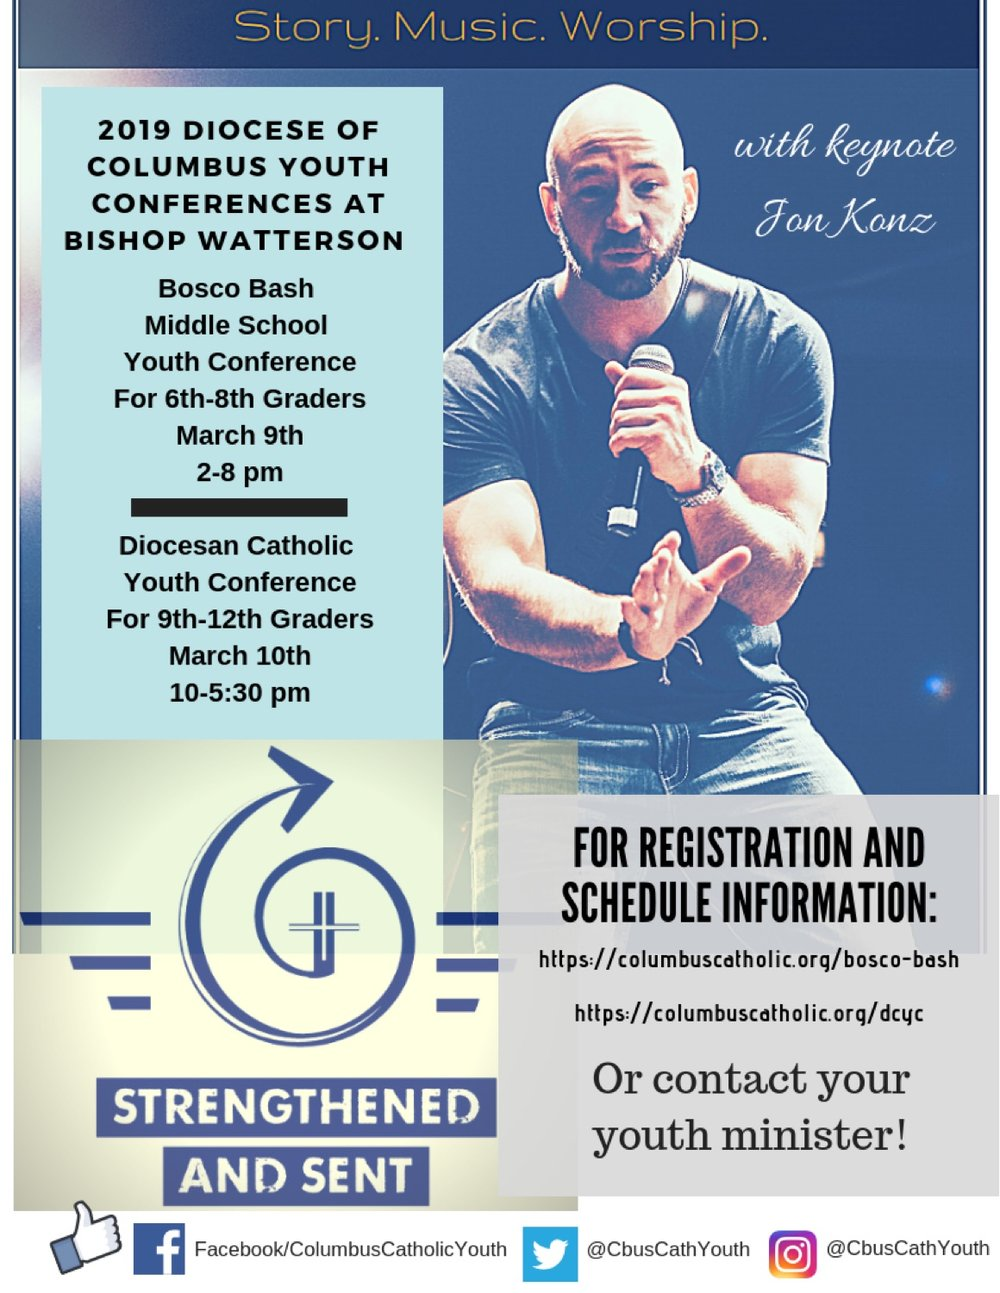 Diocesan Catholic Youth Conference